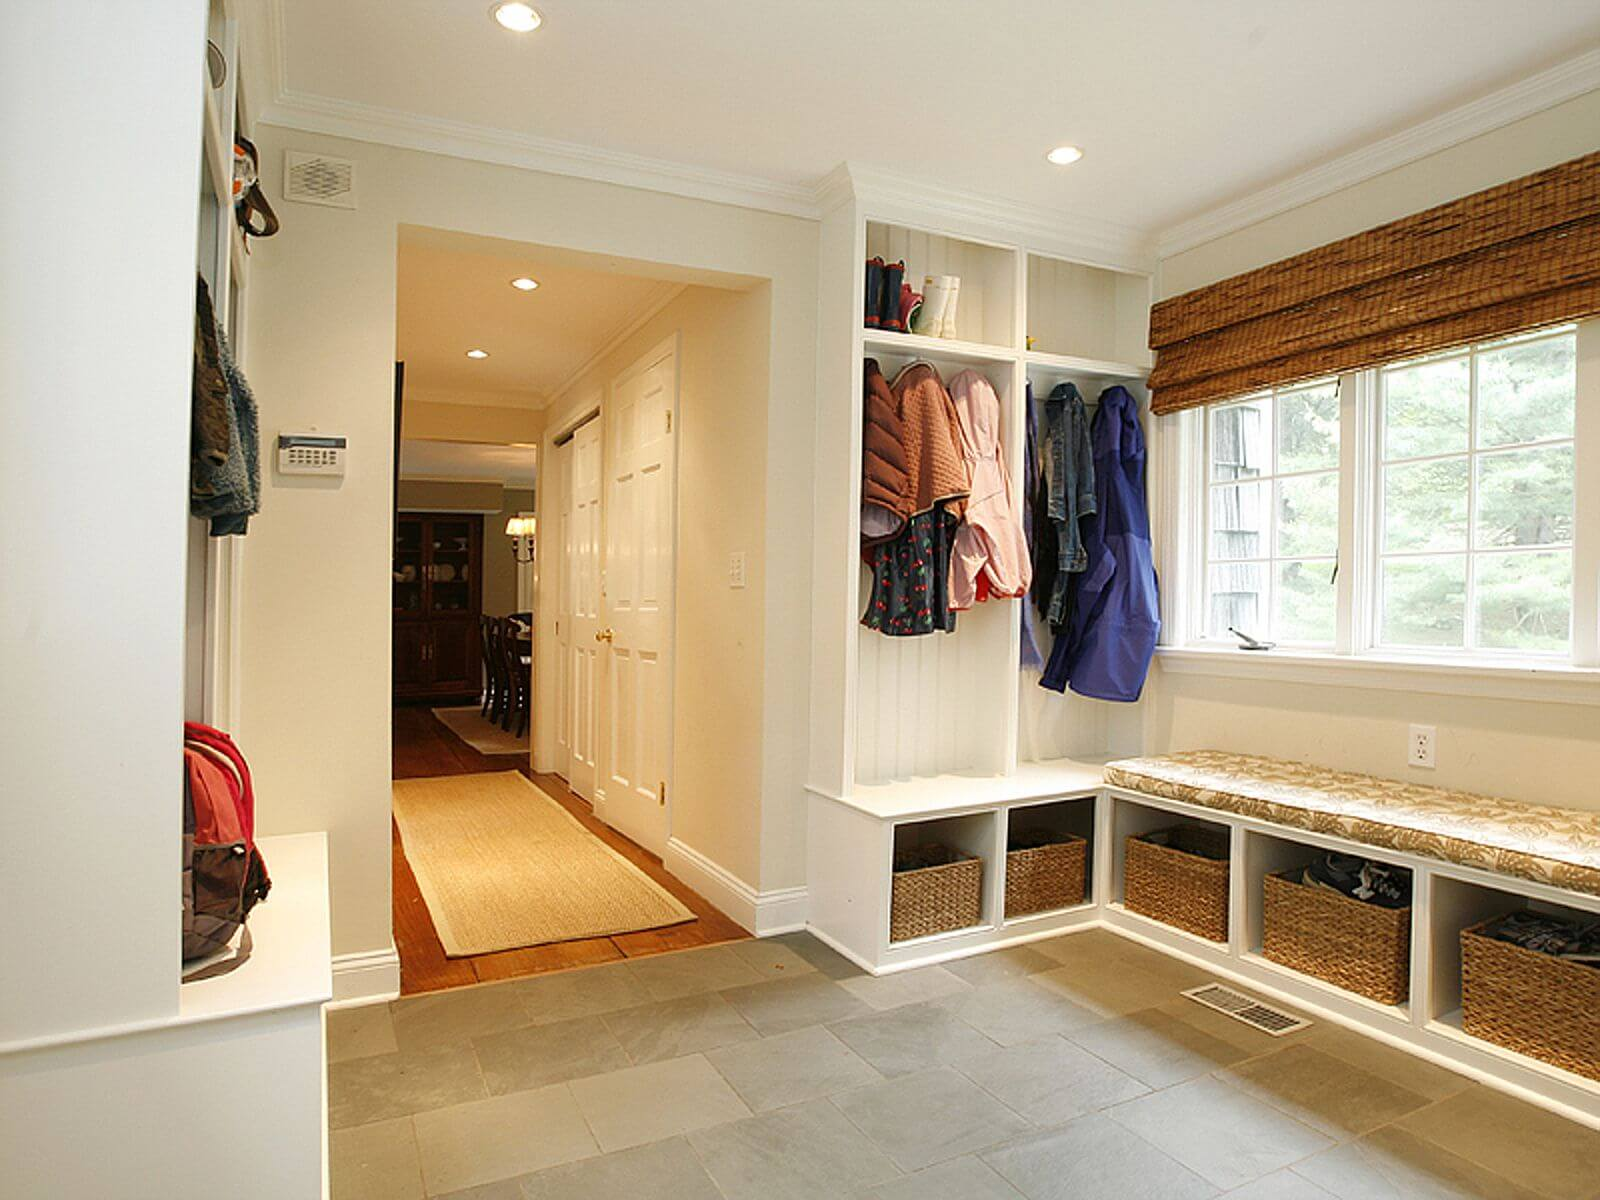 House plans with mudroom and wrap around porch